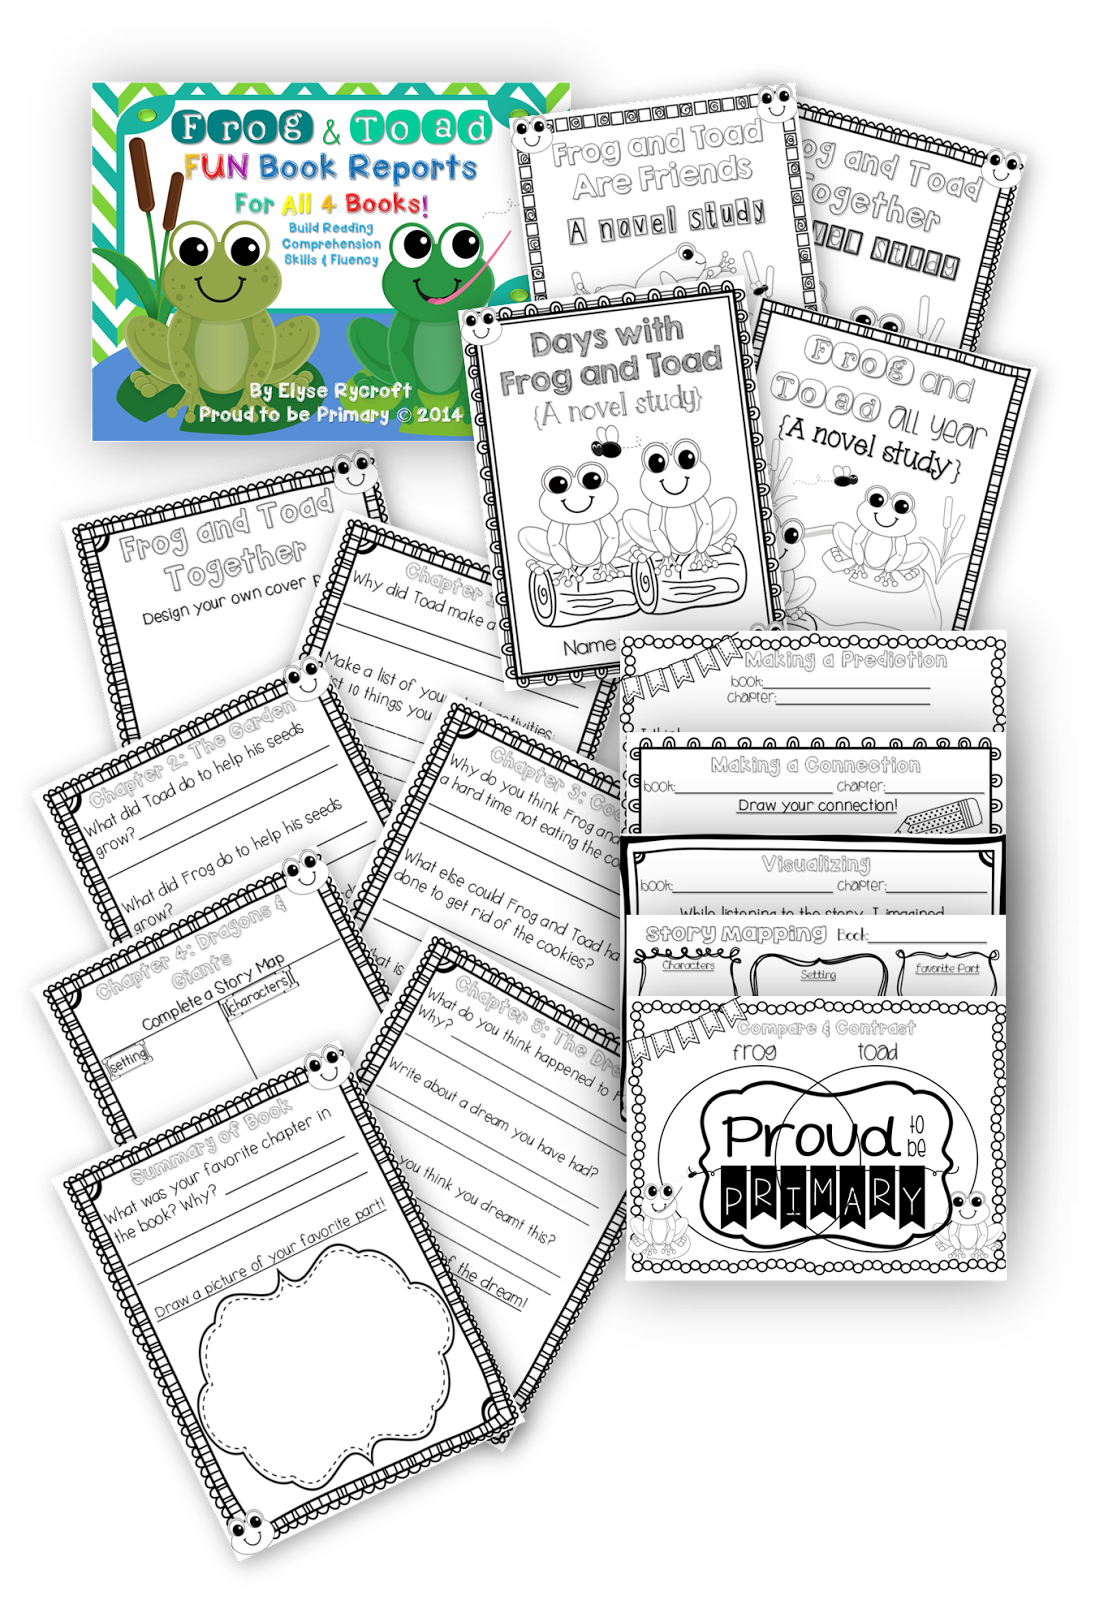 Frog Amp Toad Book Reports For All 4 Books Activities To